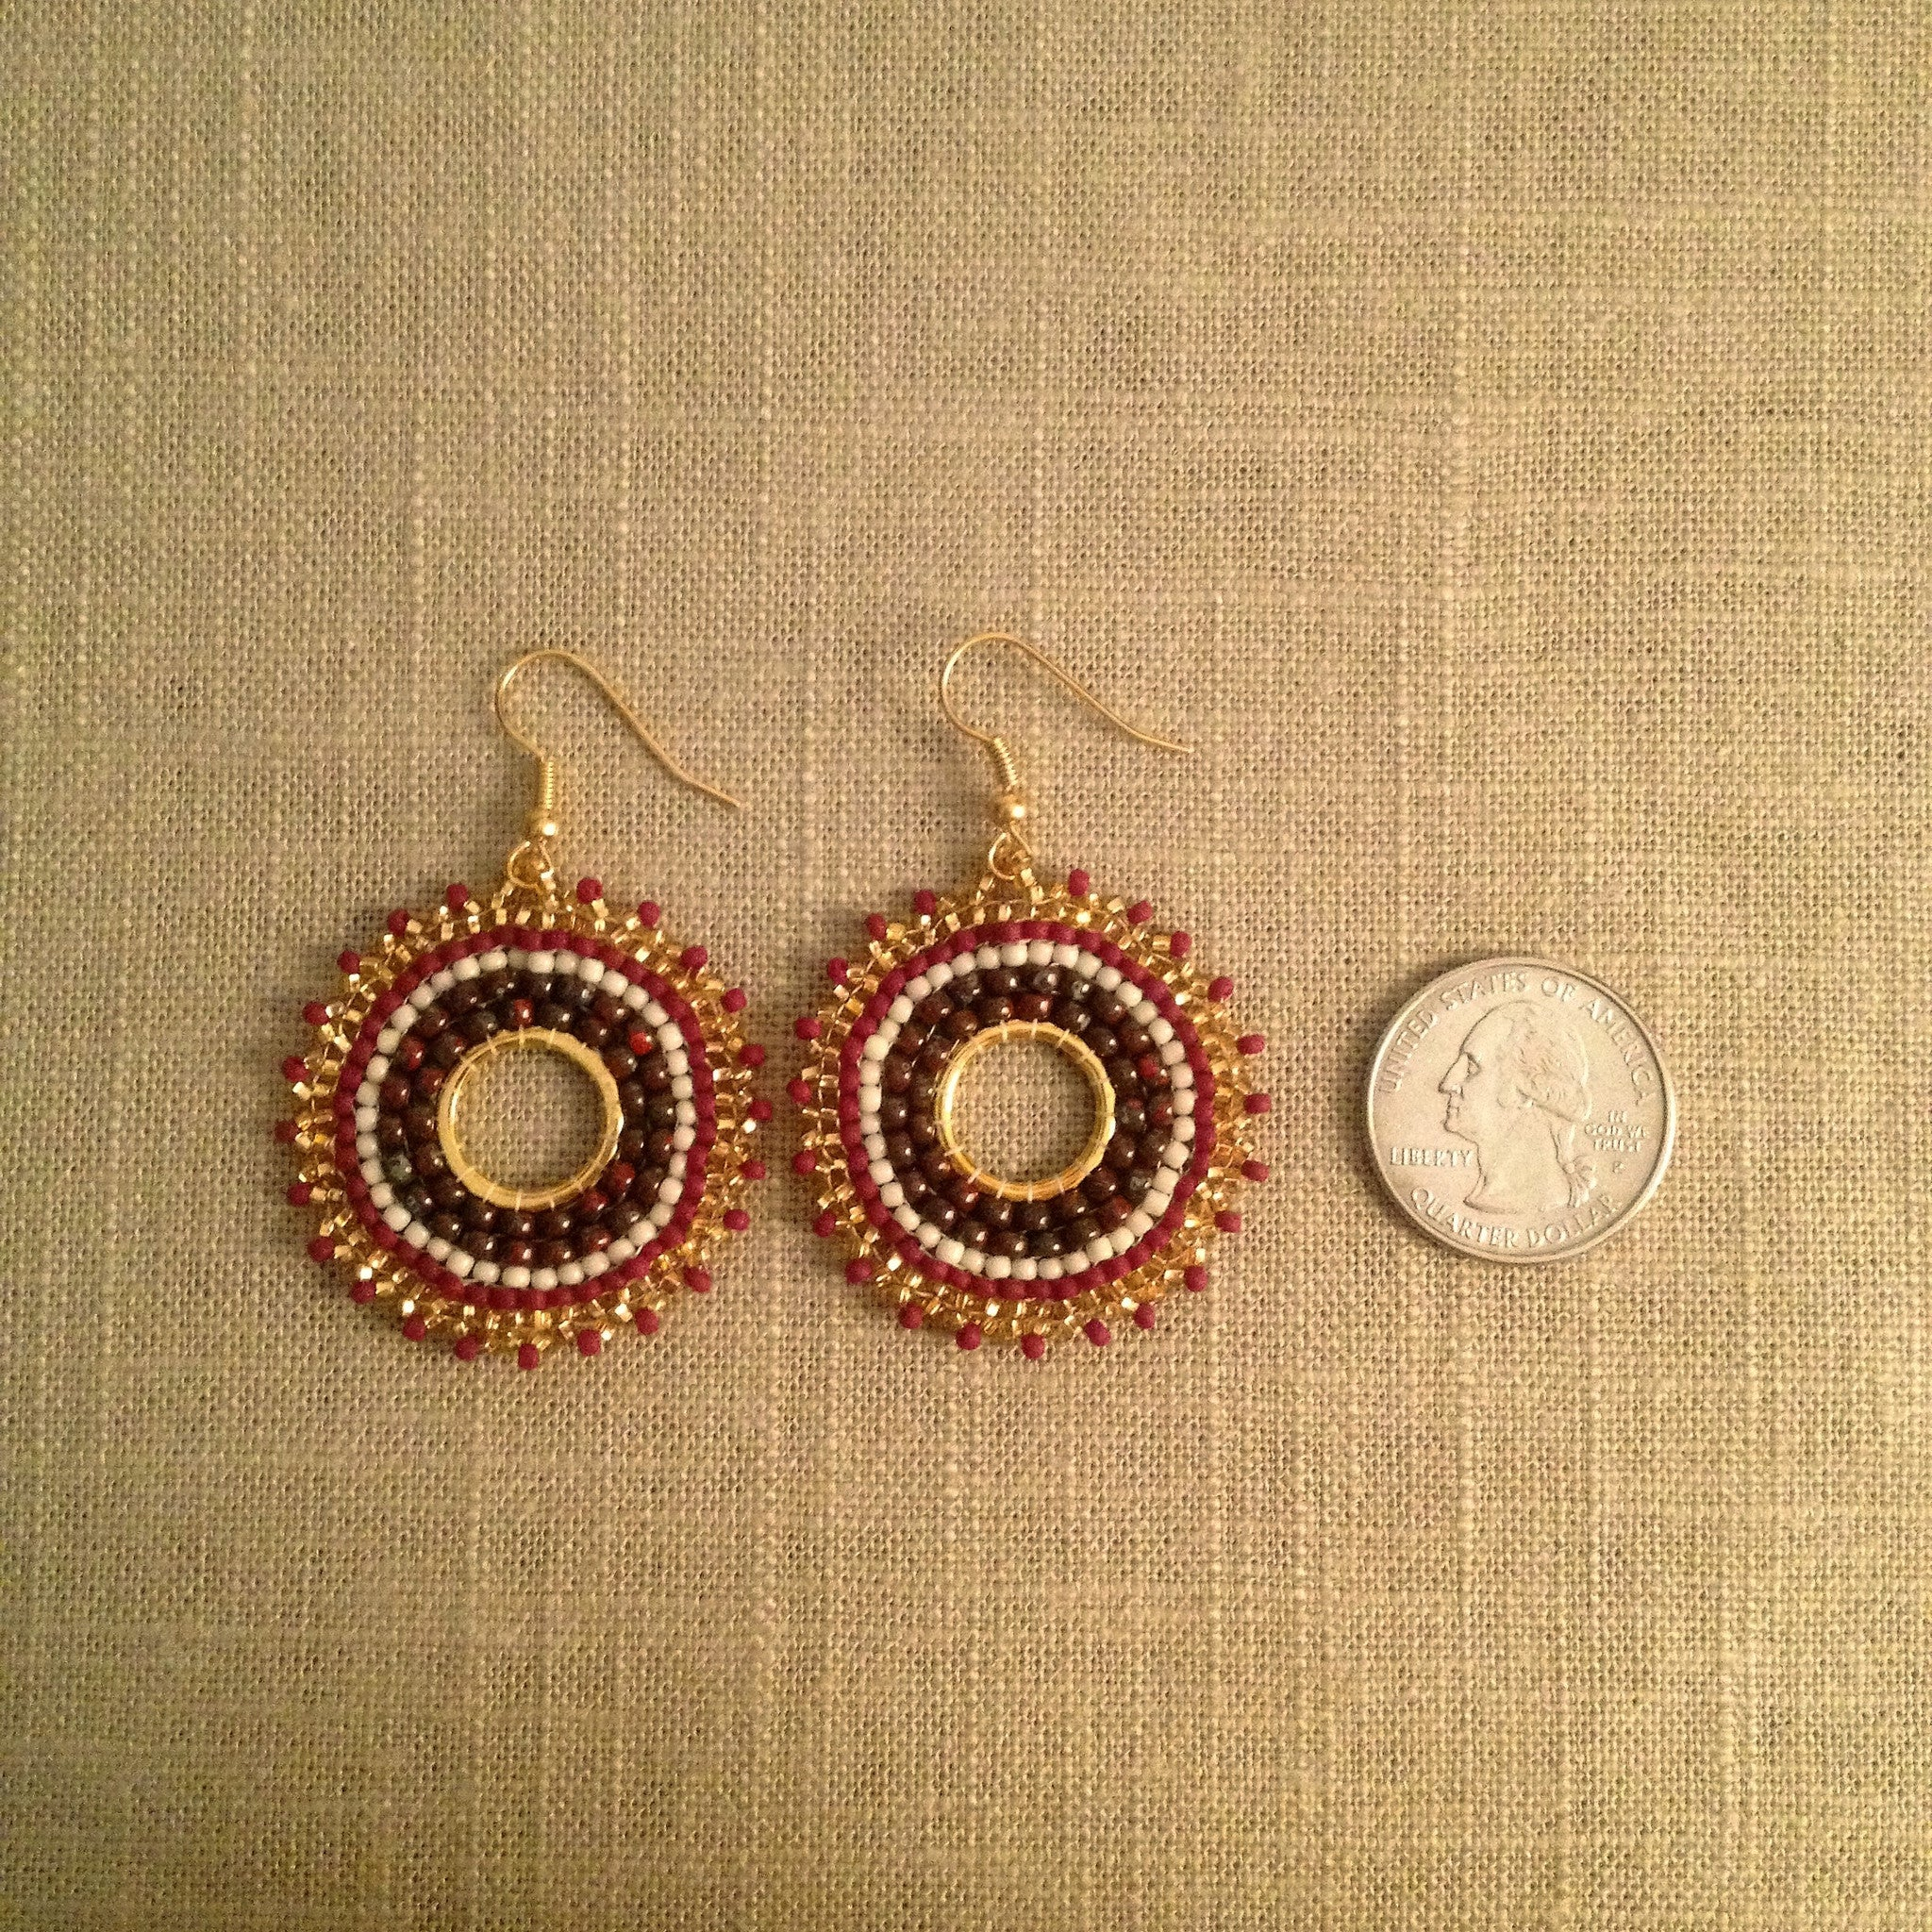 Garnet, Brown, Golden Yellow and White Sunburst Earrings